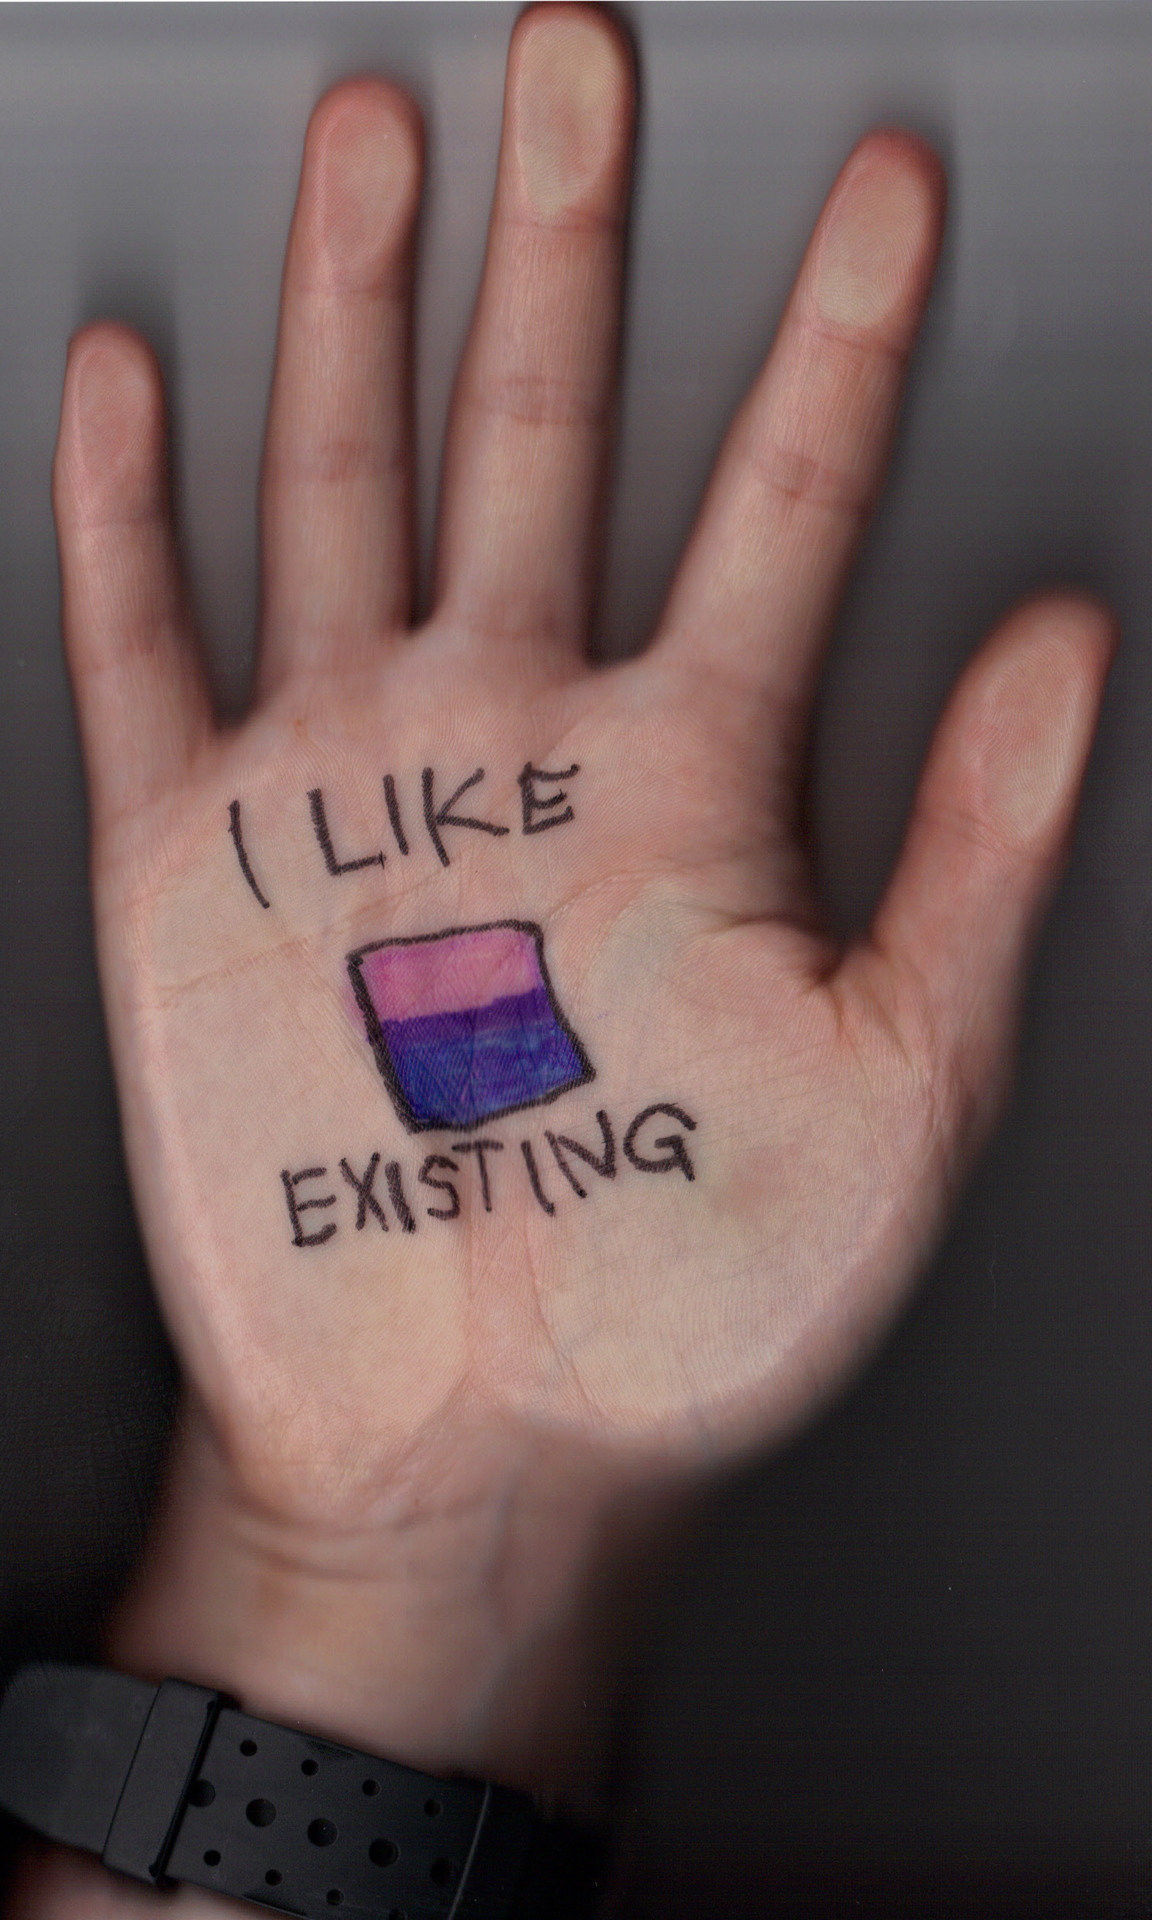 "A photo of someone's palm with a hand drawn square-ish bisexual pride flag (three horizontal stripes: top Rose = representing possibility of Same Gender attraction; bottom Blue = representing possibility of Different Gender attraction; and where the stripes overlap in Lavender = representing possibility of attraction Anywhere along the Entire Gender Spectrum).  Above the flag is written ""I Like"" and below the flag the statement finishes with the word ""Existing""."